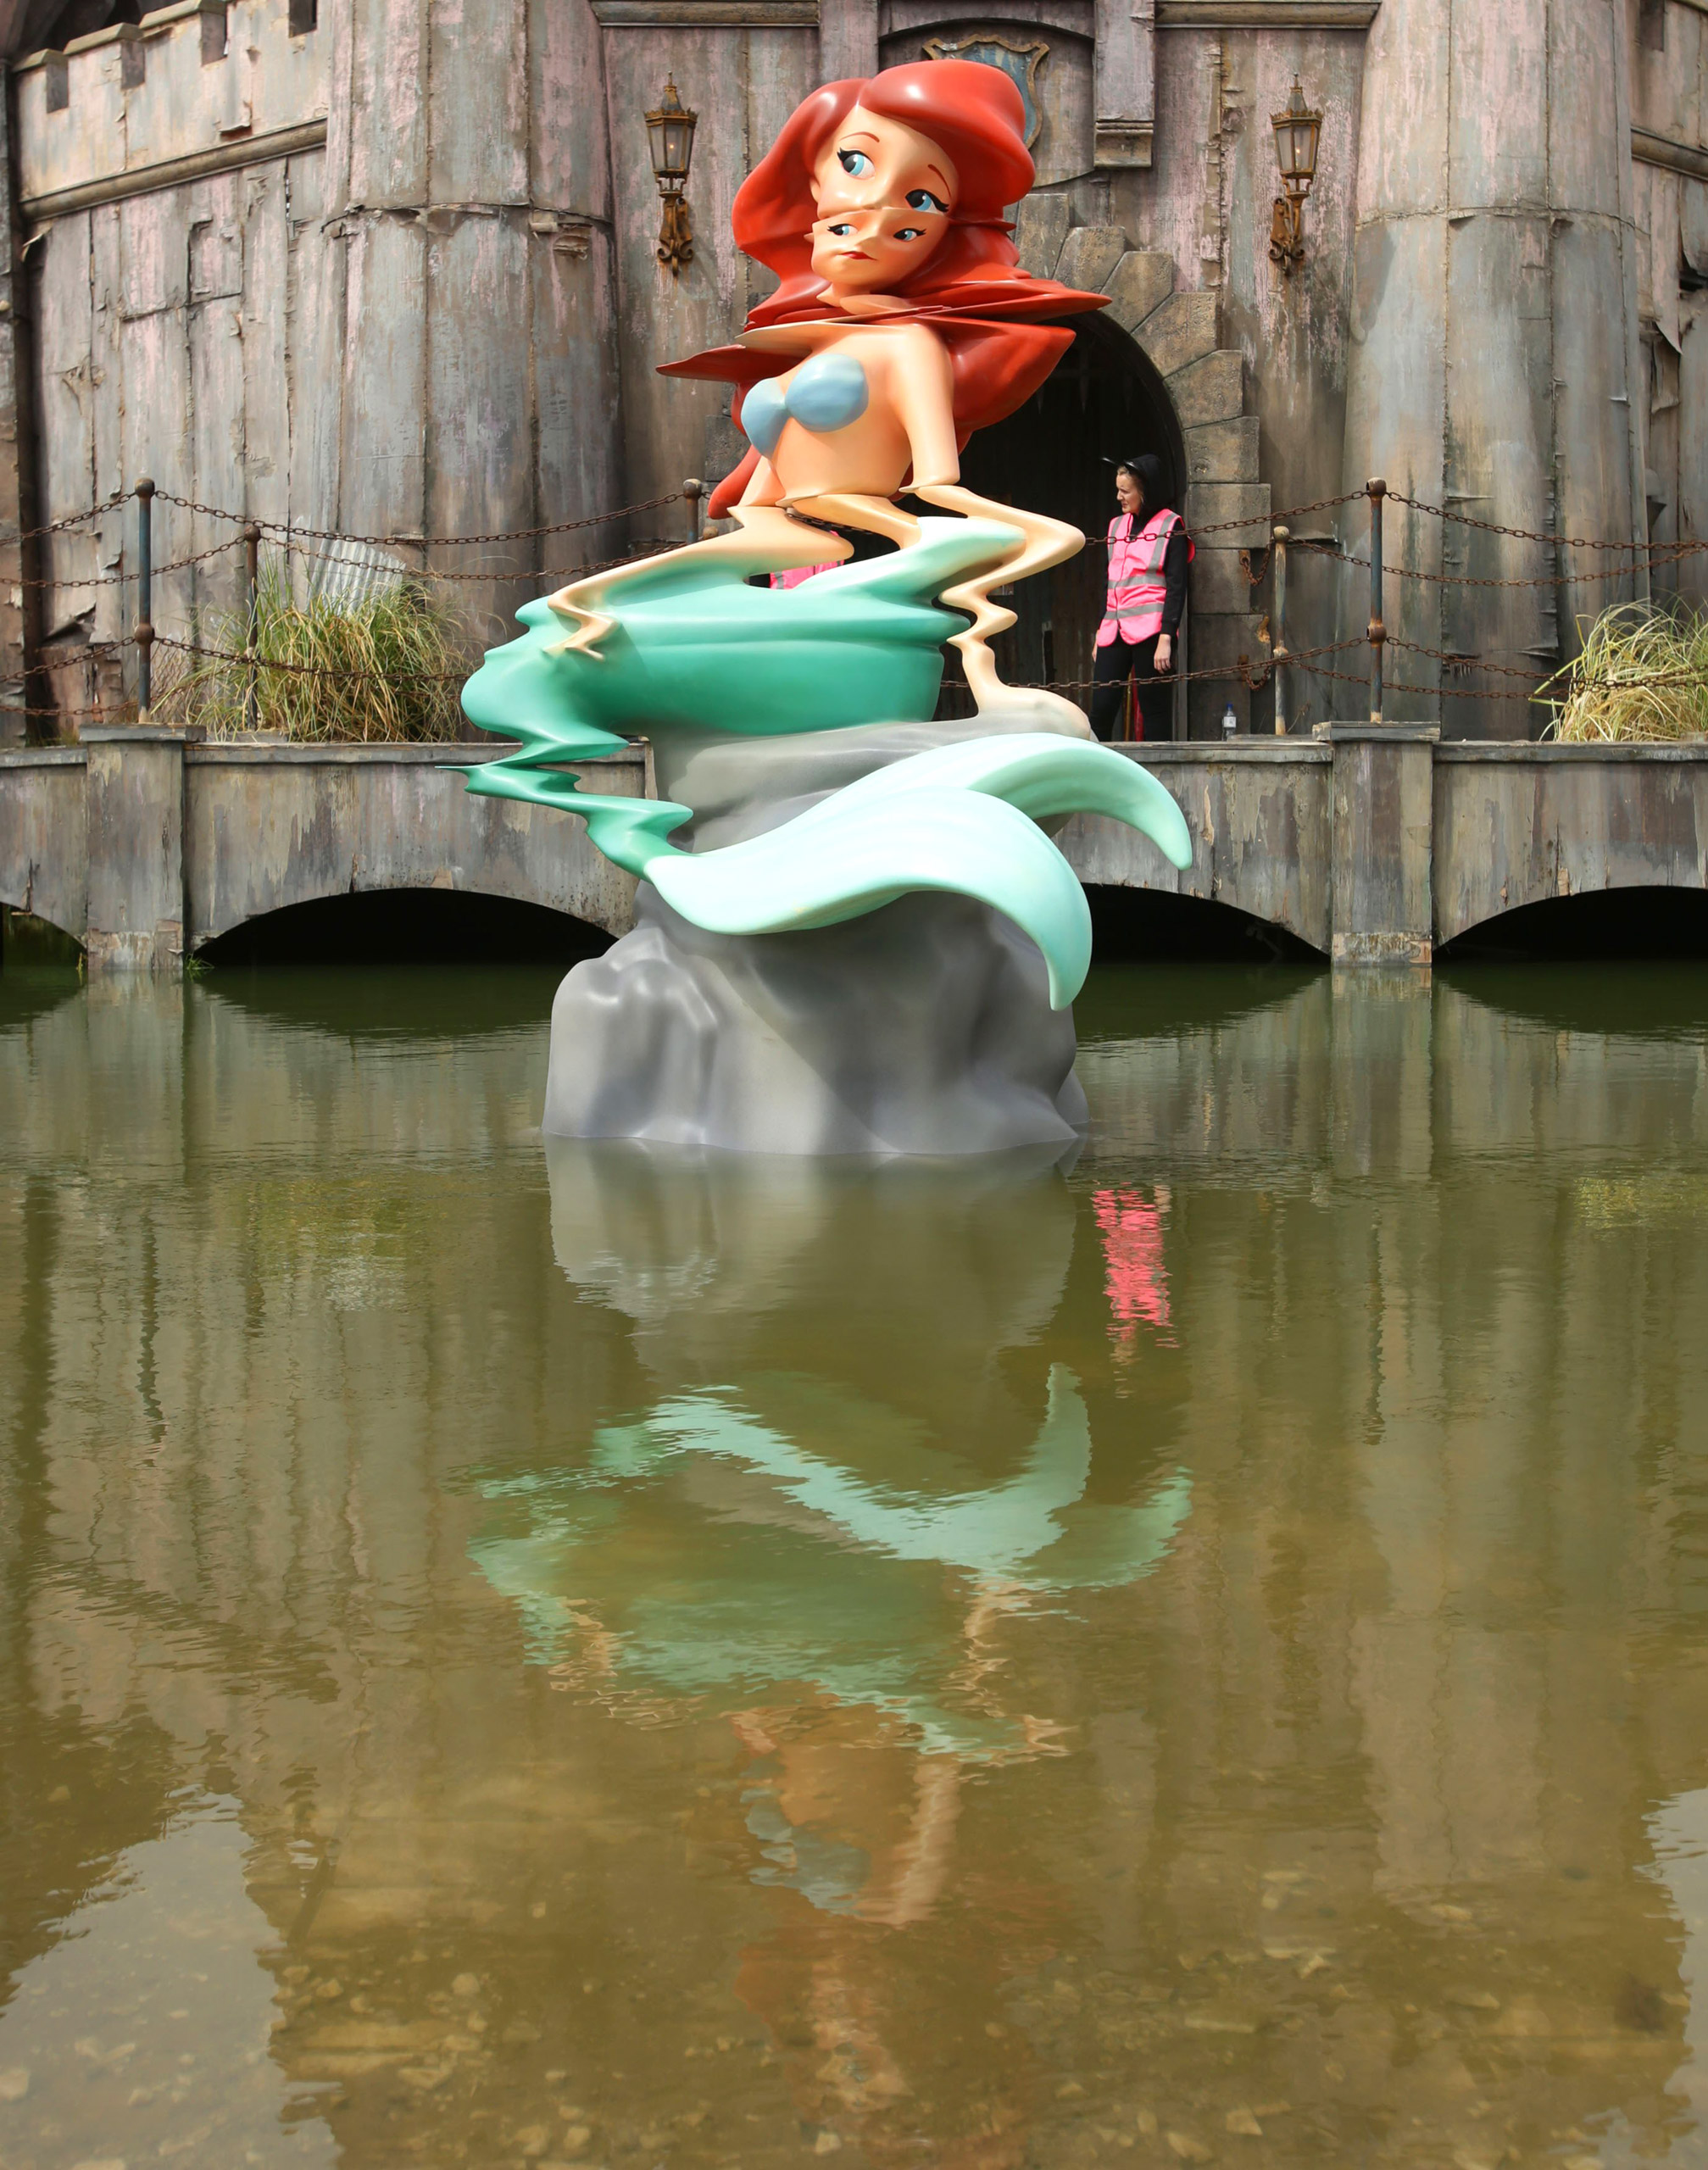 A sculpture of a mermaid reminiscent of Disney's The Little Mermaid by Banksy.